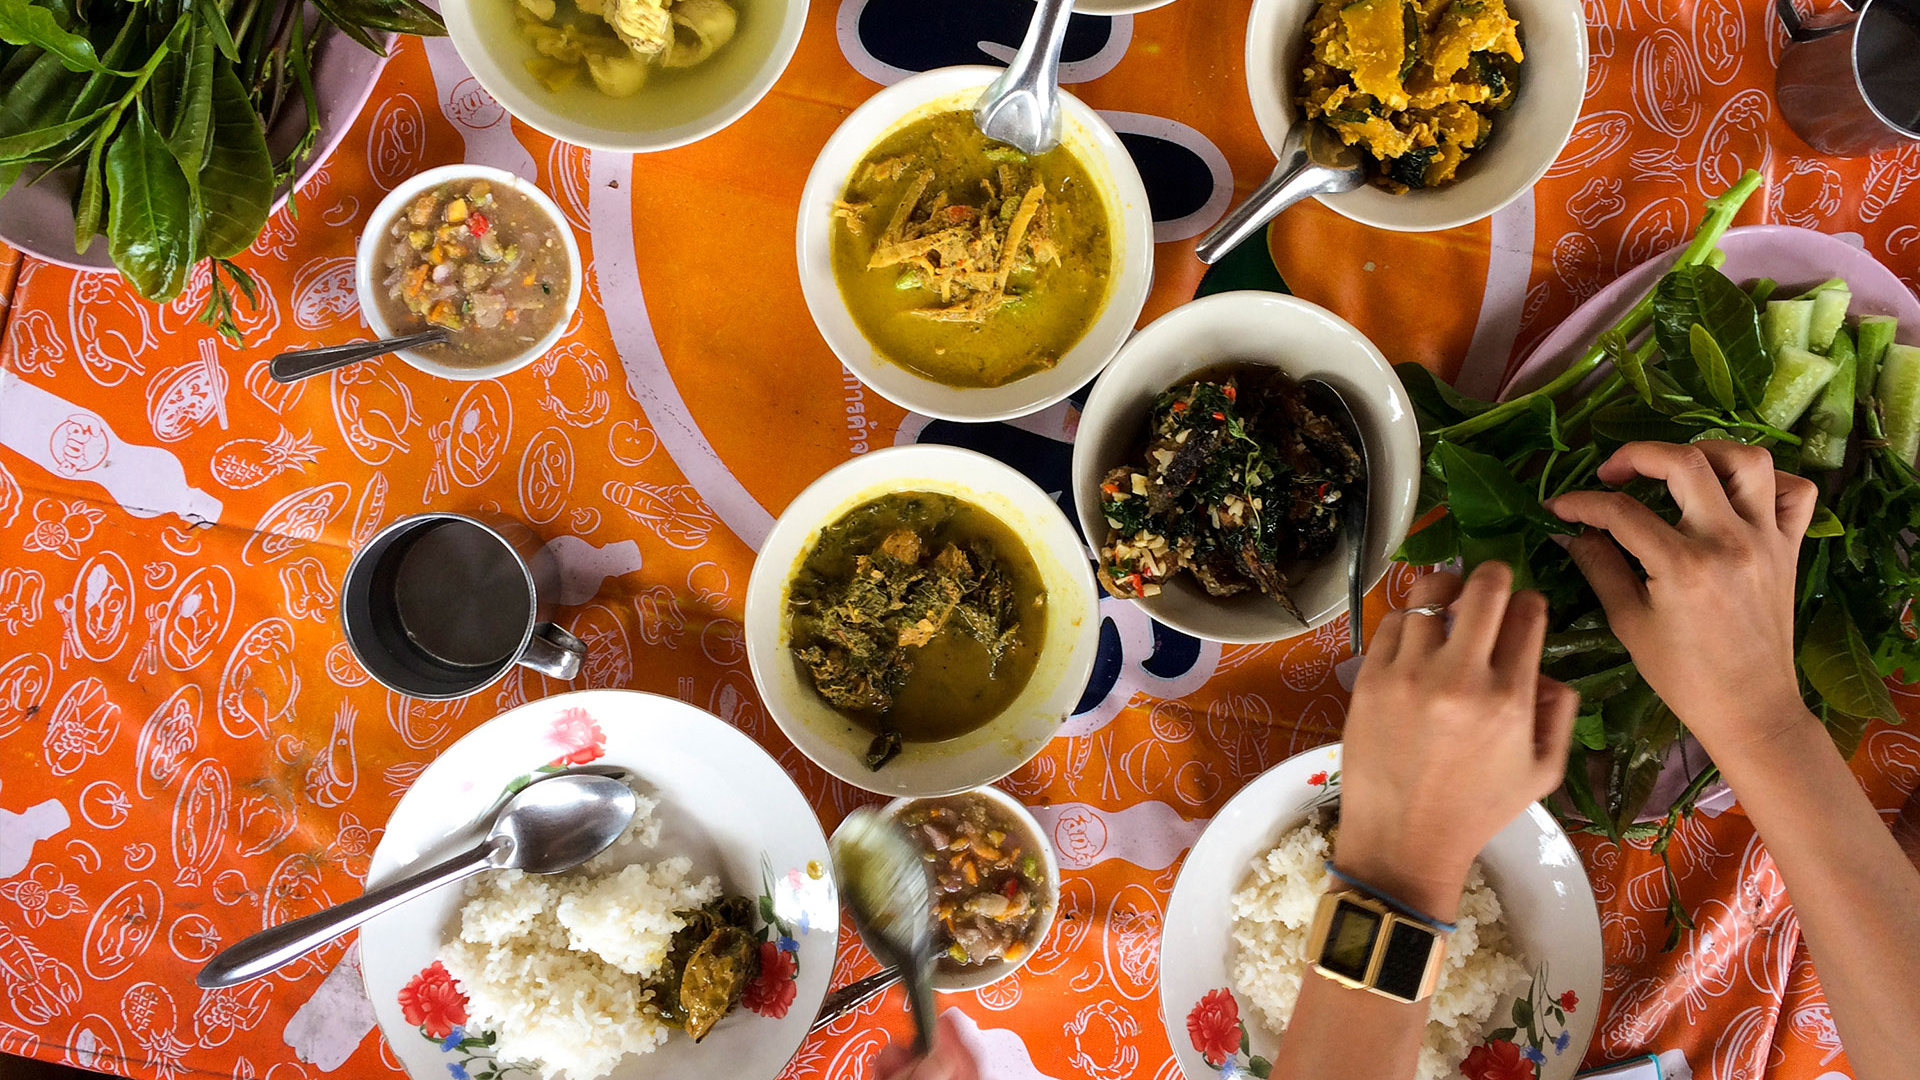 Khao geng at a roadside café in Trang, southern Thailand. Photograph by Mike Gibson